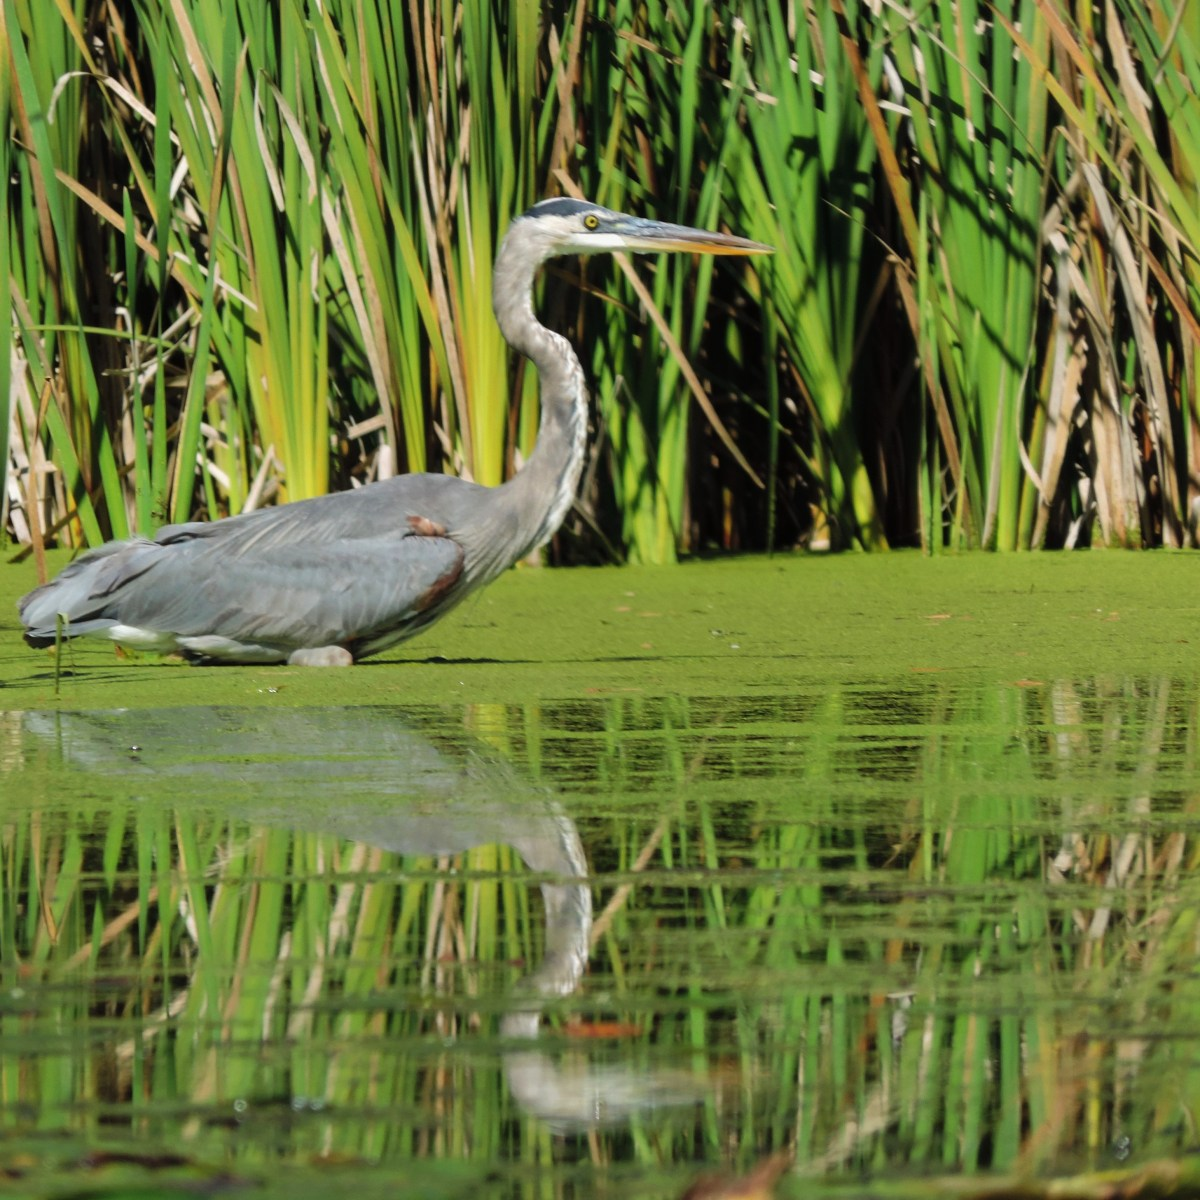 A Great Blue Heron stands still in the water